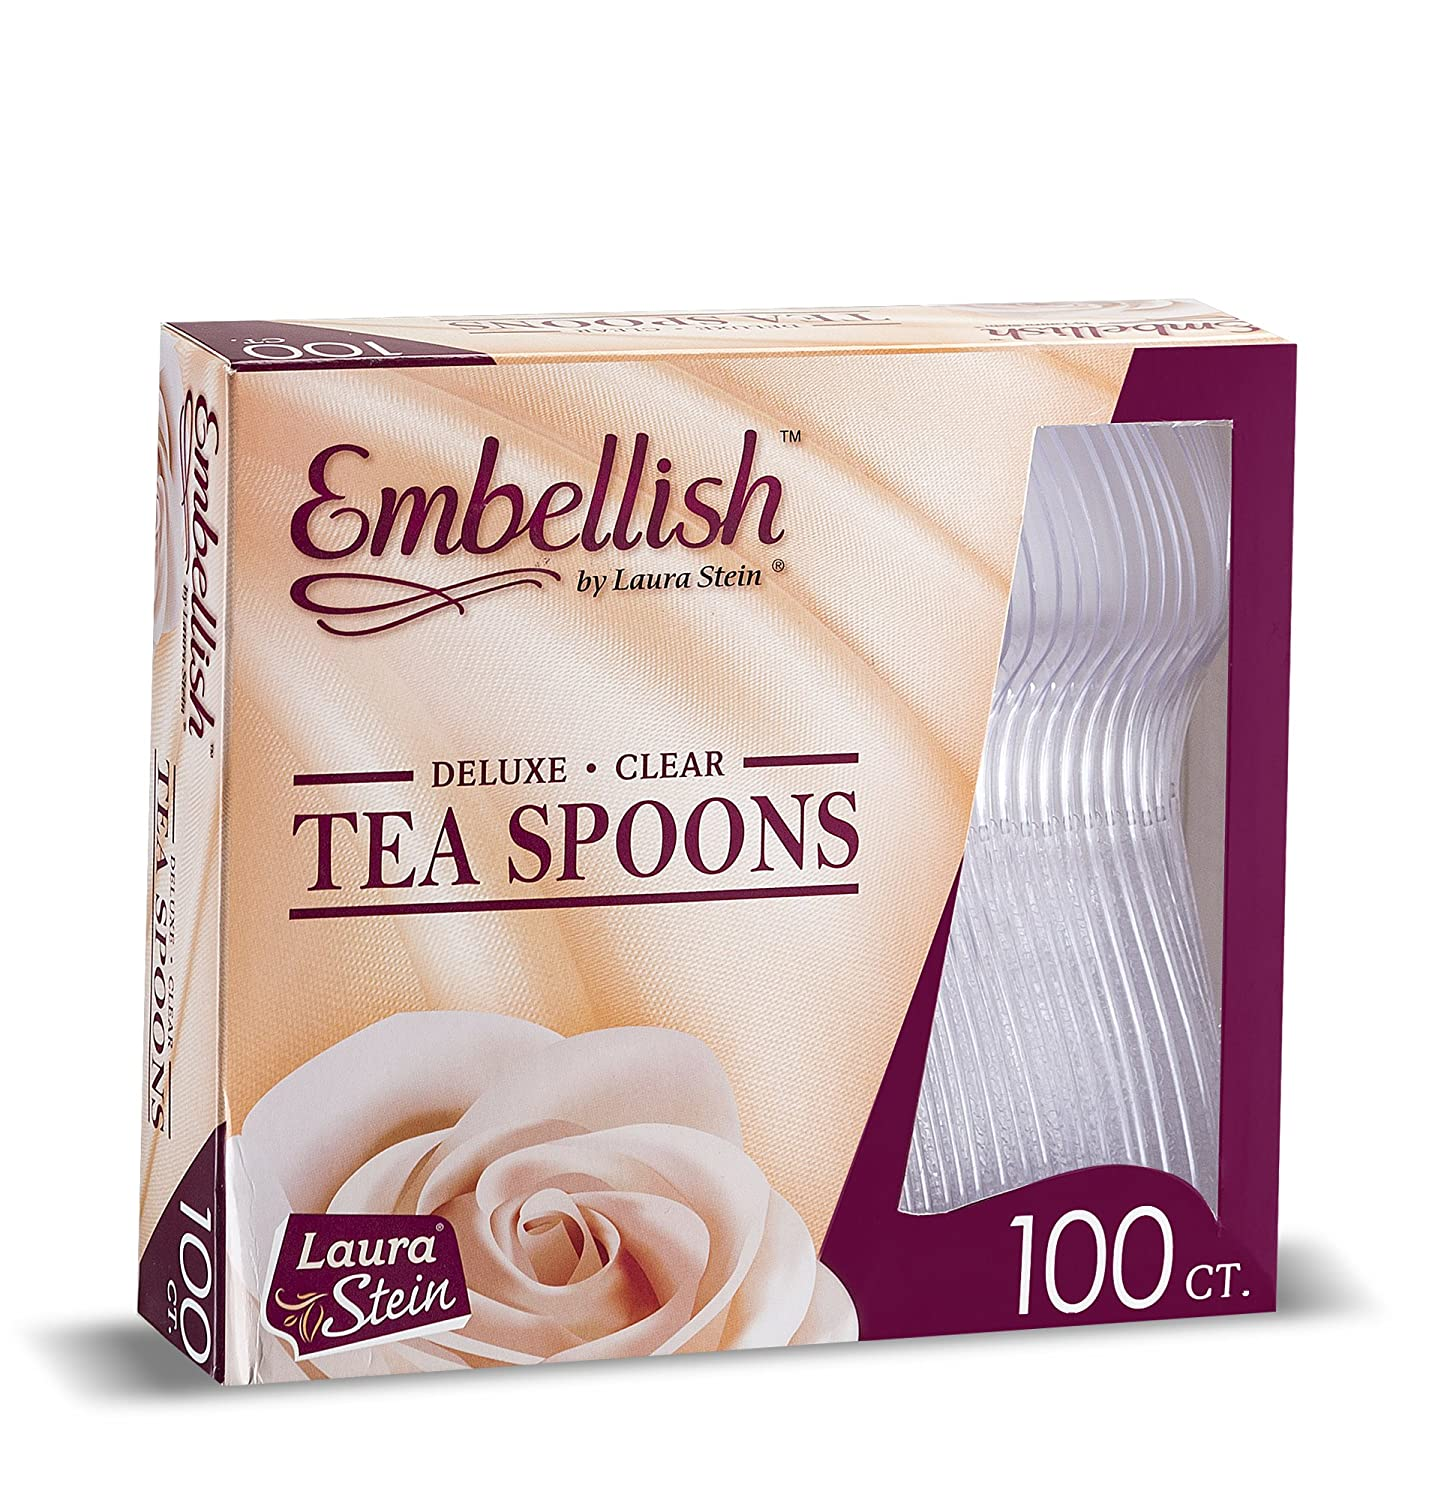 Embellish Cutlery Deluxe Heavy Weight Clear Plastic Tea Spoons 100 Tea Spoons In A Box KCH Corporation COMINHKPR141642